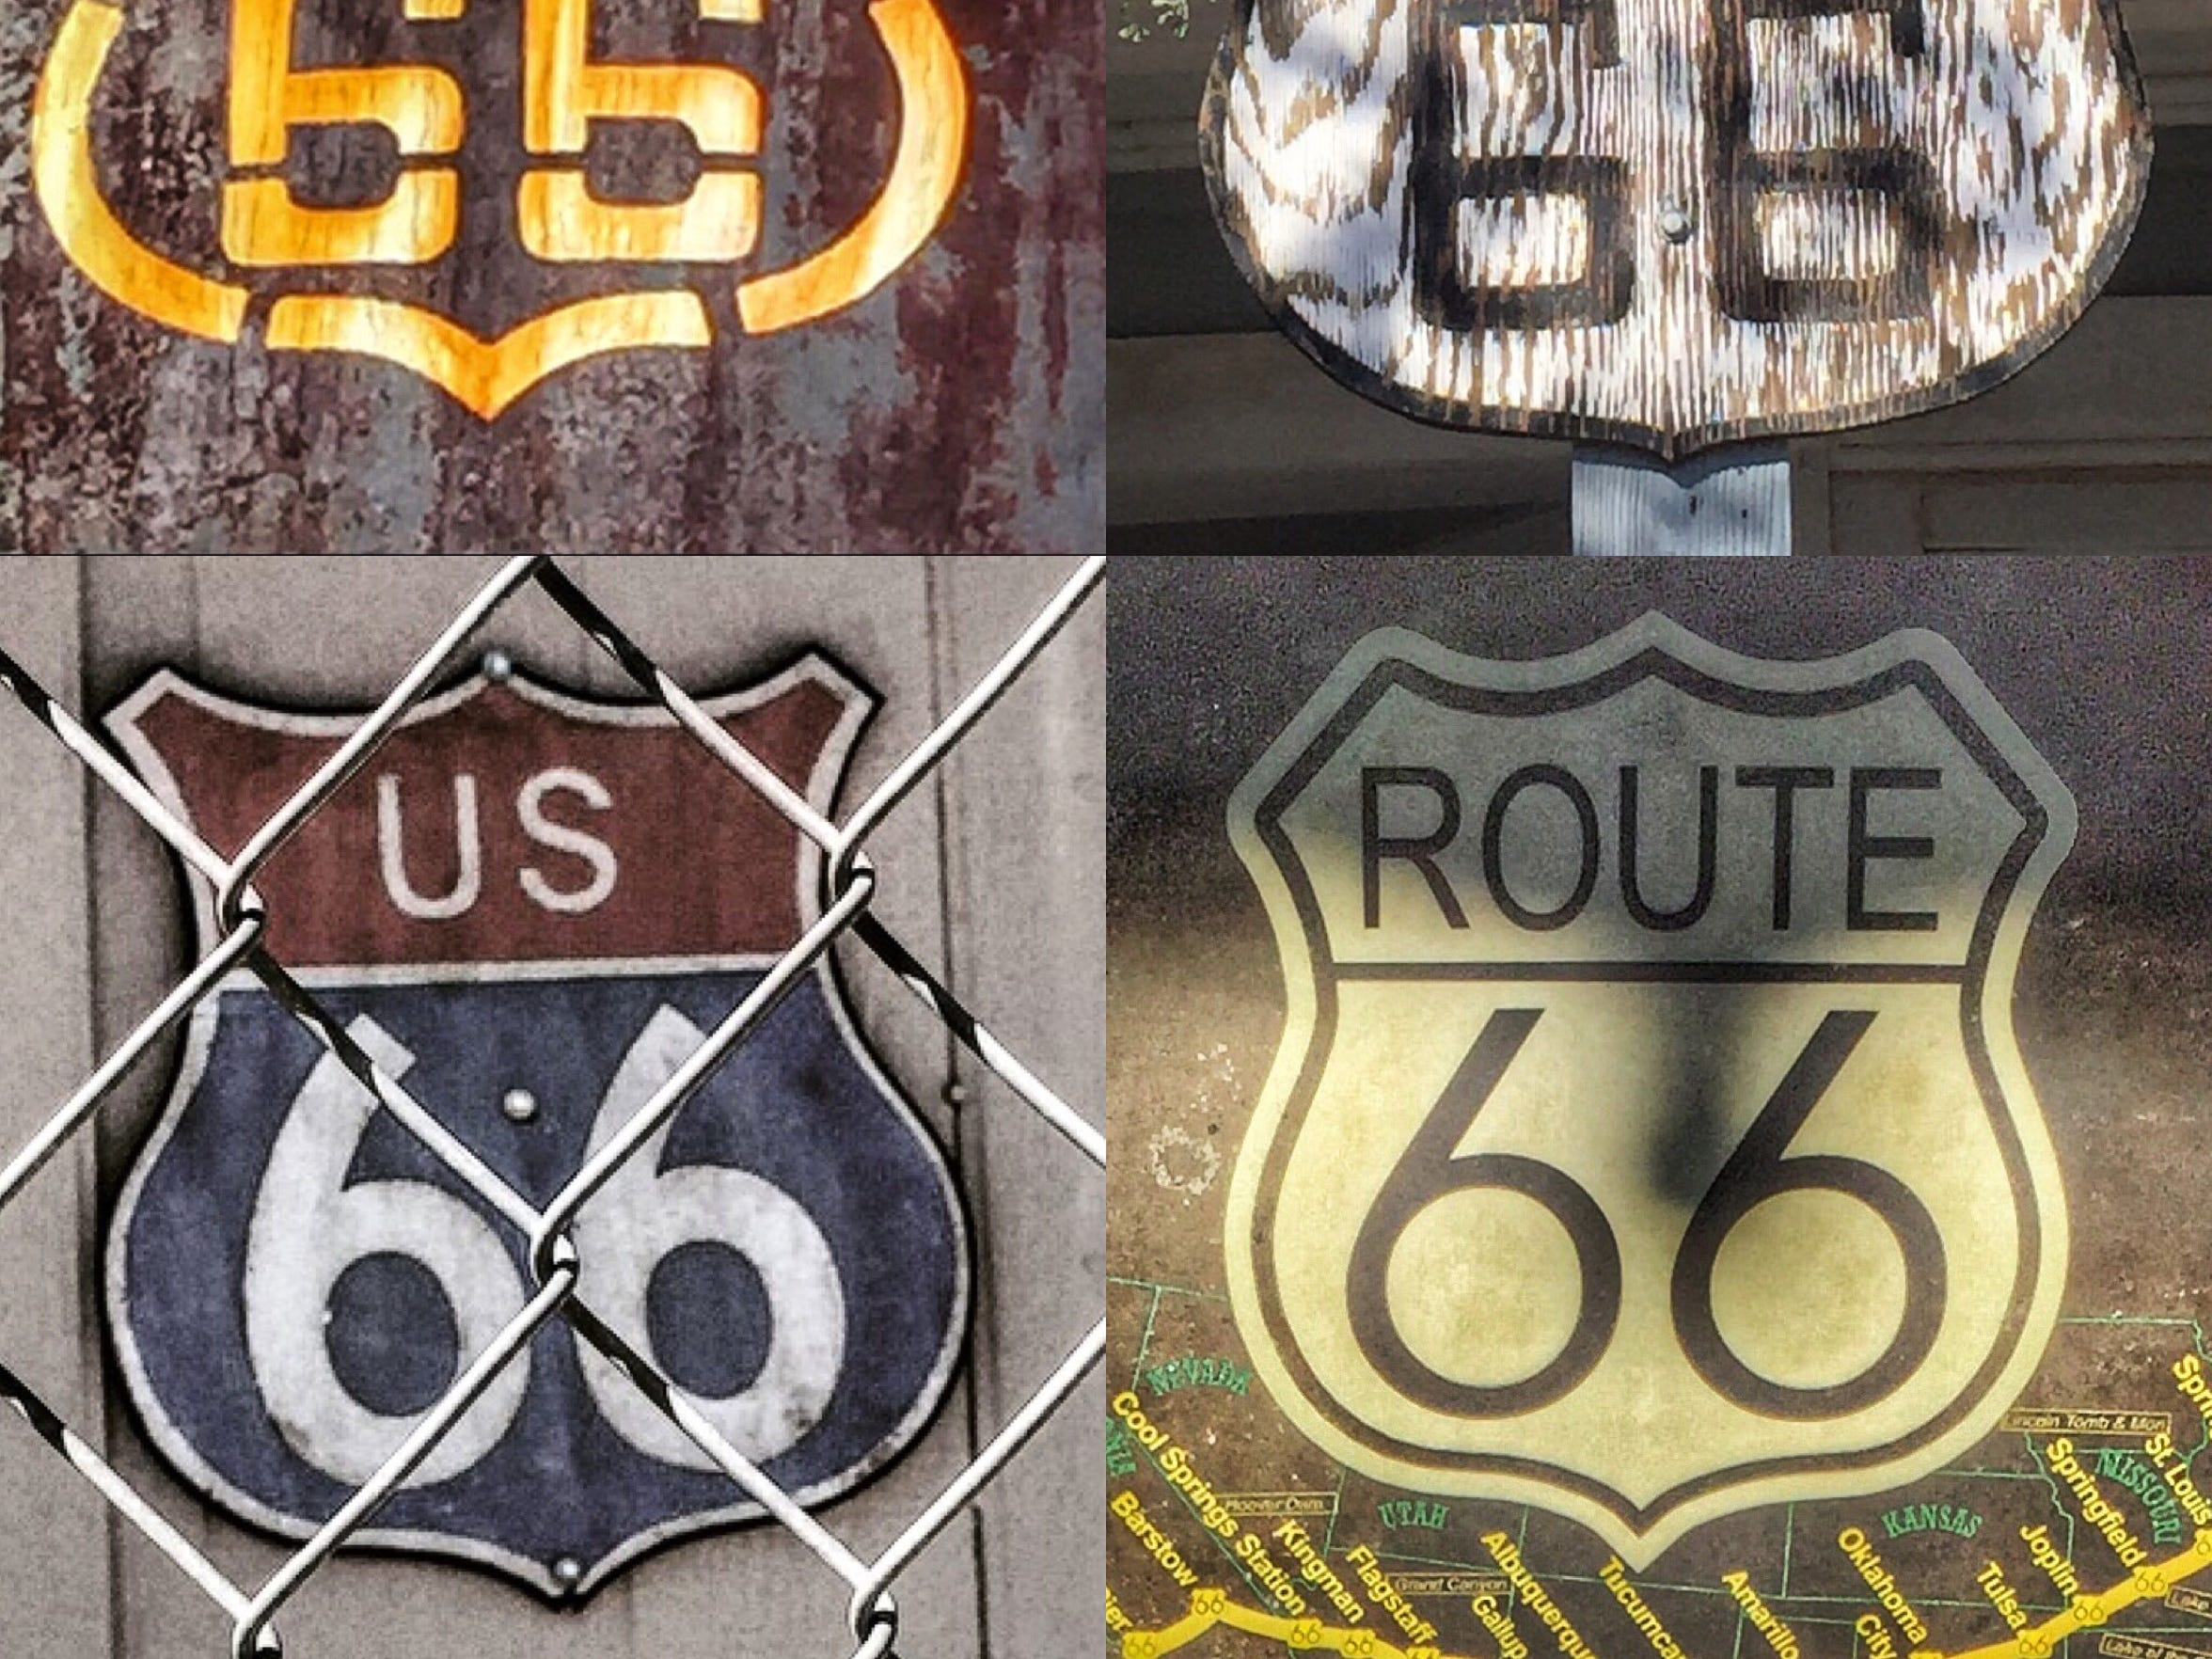 Cruising along Route 66, you'll see markers in many